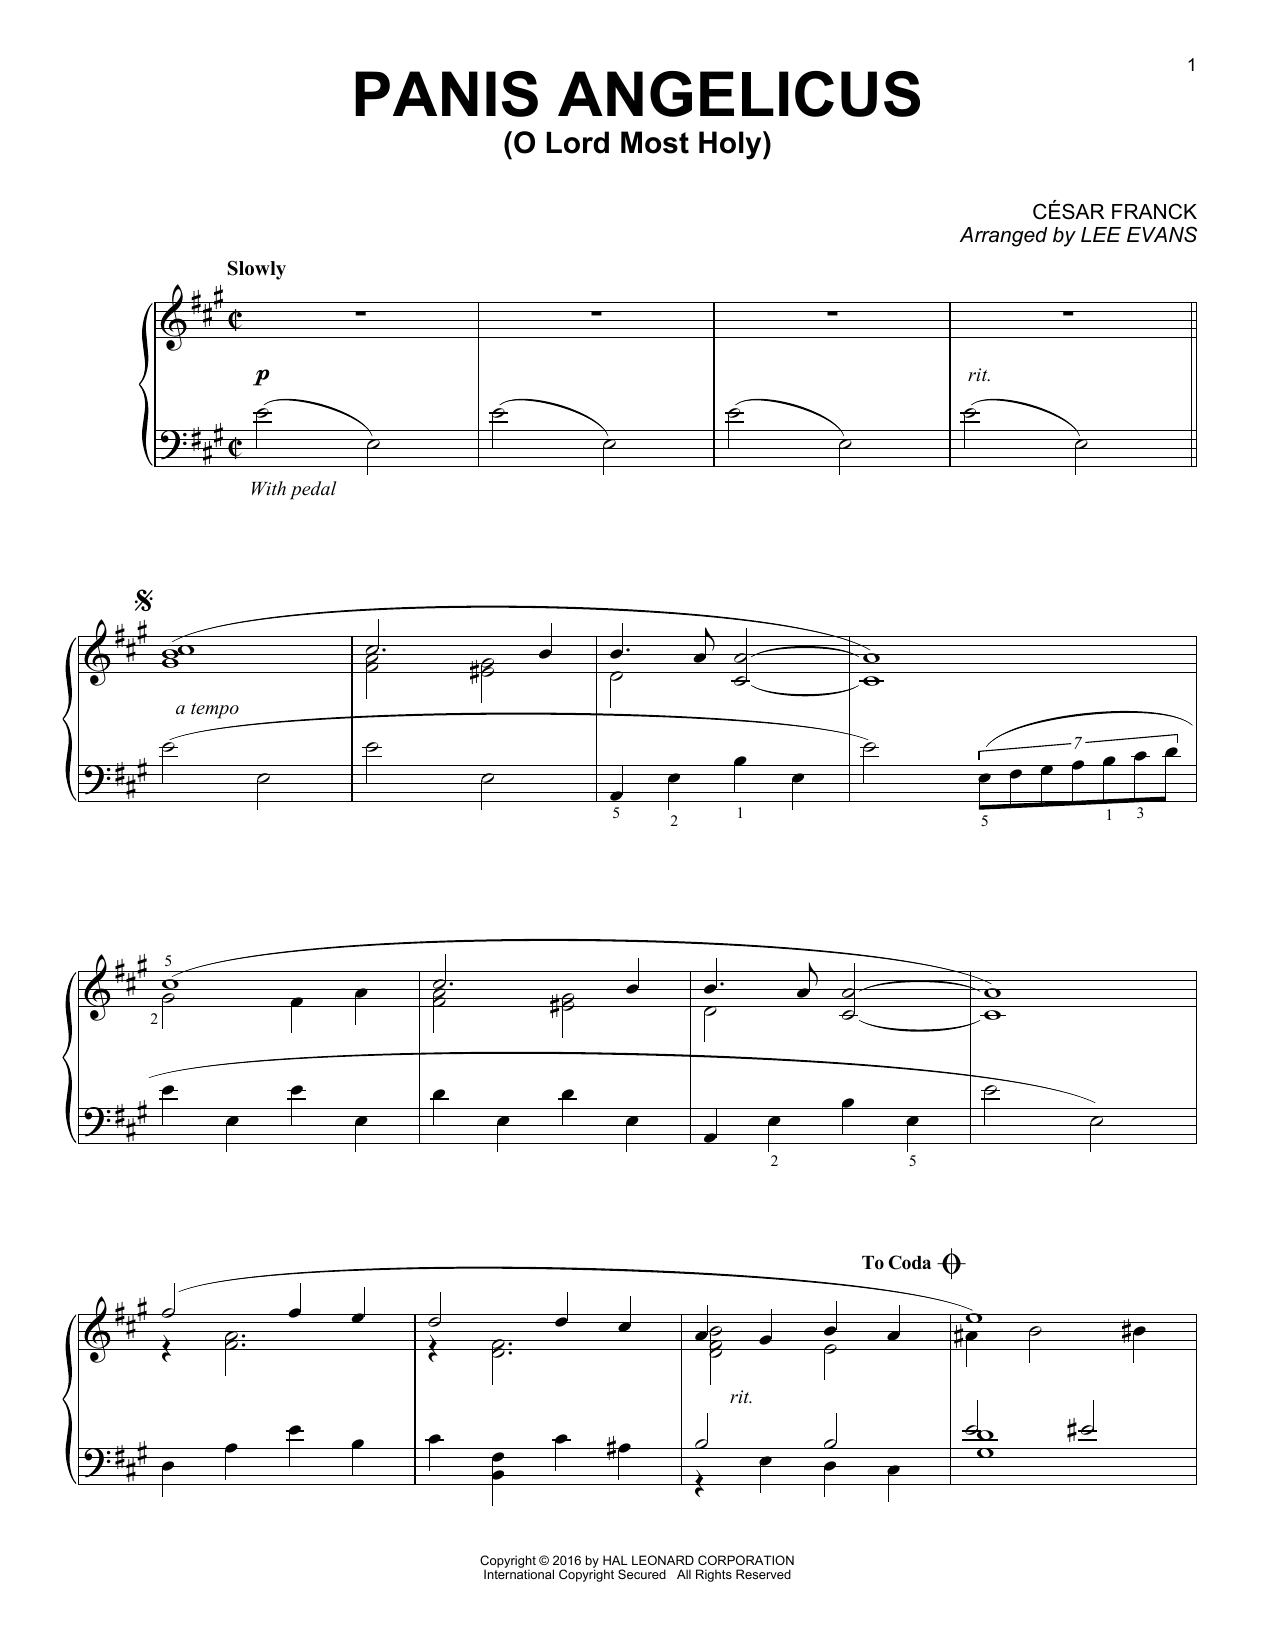 Lee Evans Panis Angelicus (O Lord Most Holy) sheet music notes and chords. Download Printable PDF.